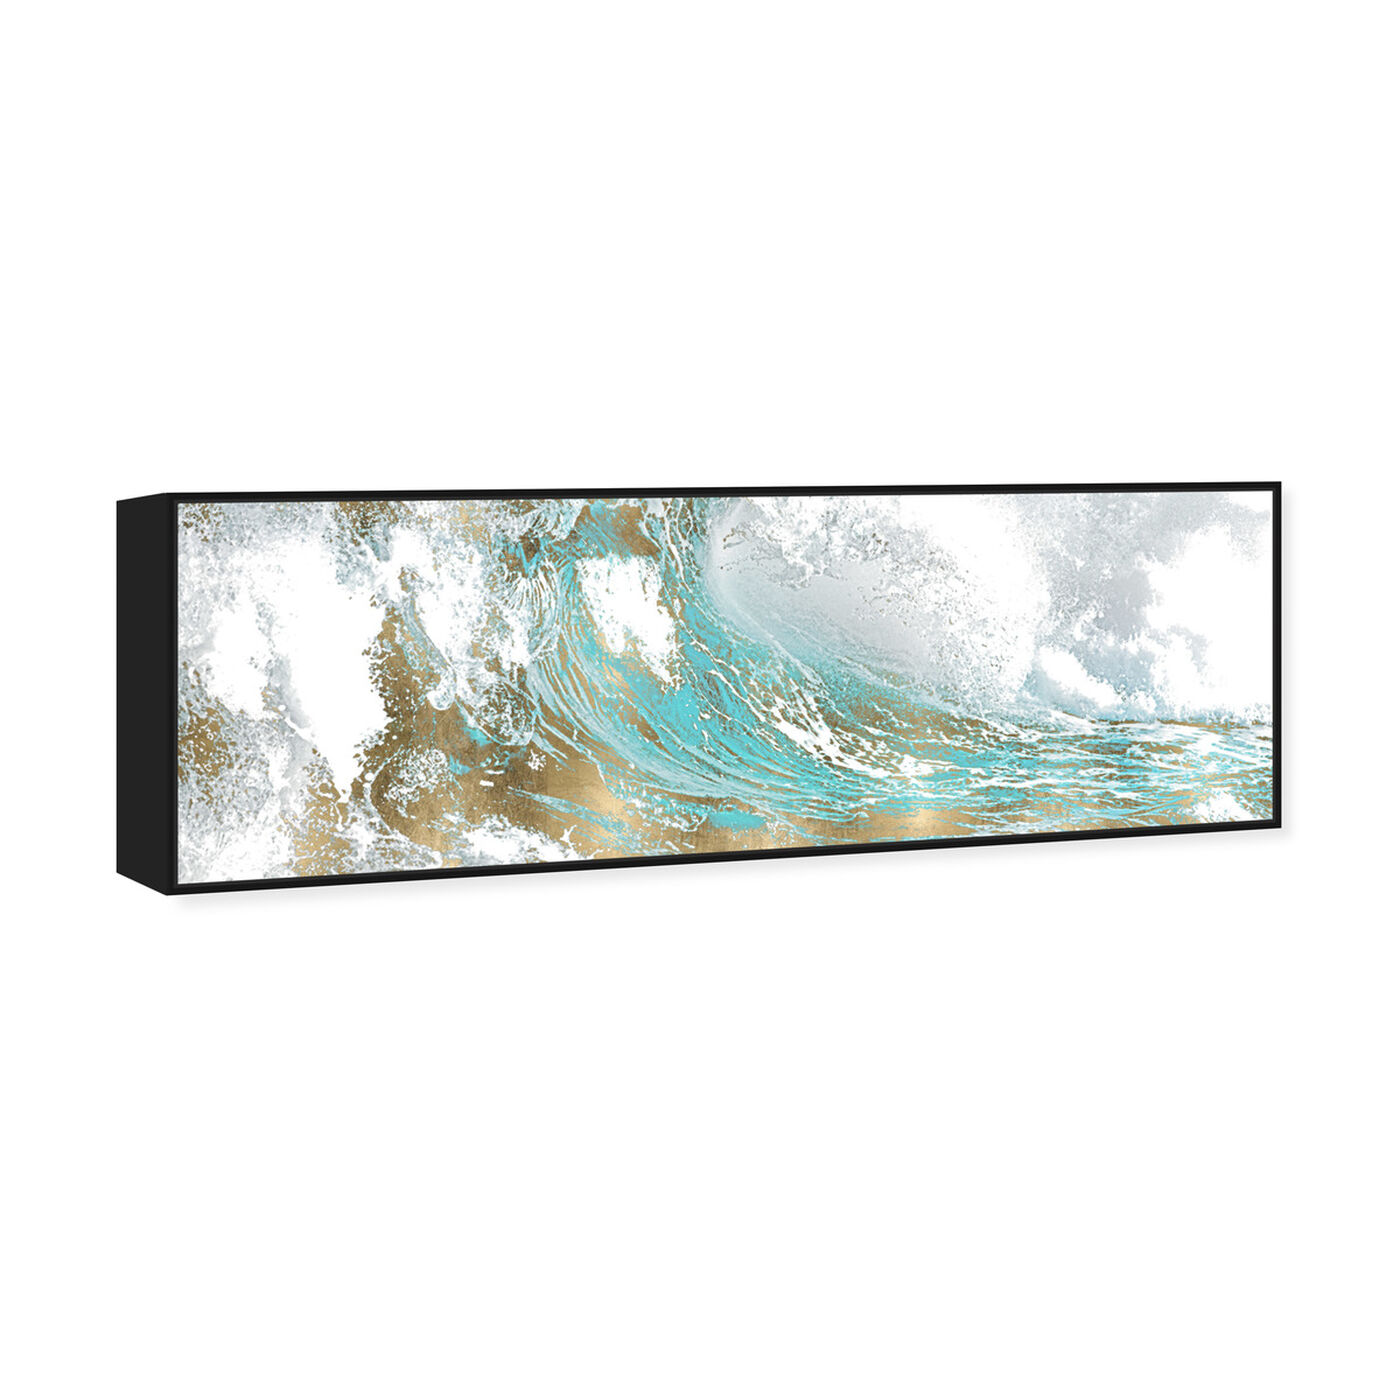 Angled view of Wave in a Moment Aqua featuring abstract and paint art.